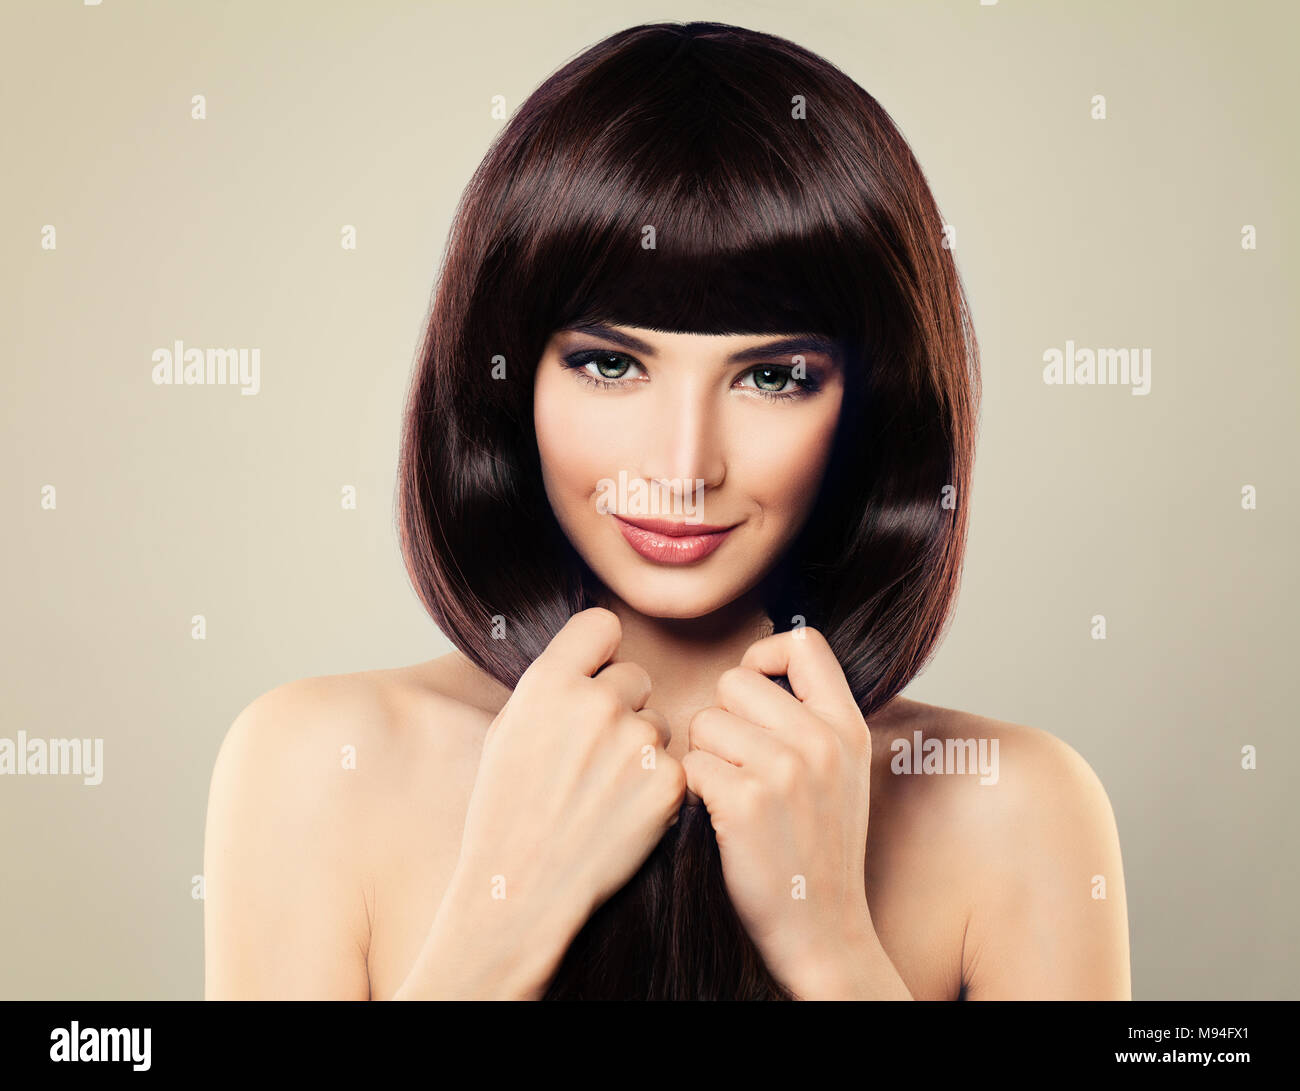 Haircare Concept Beautiful Fashion Model With Long Healthy Hair